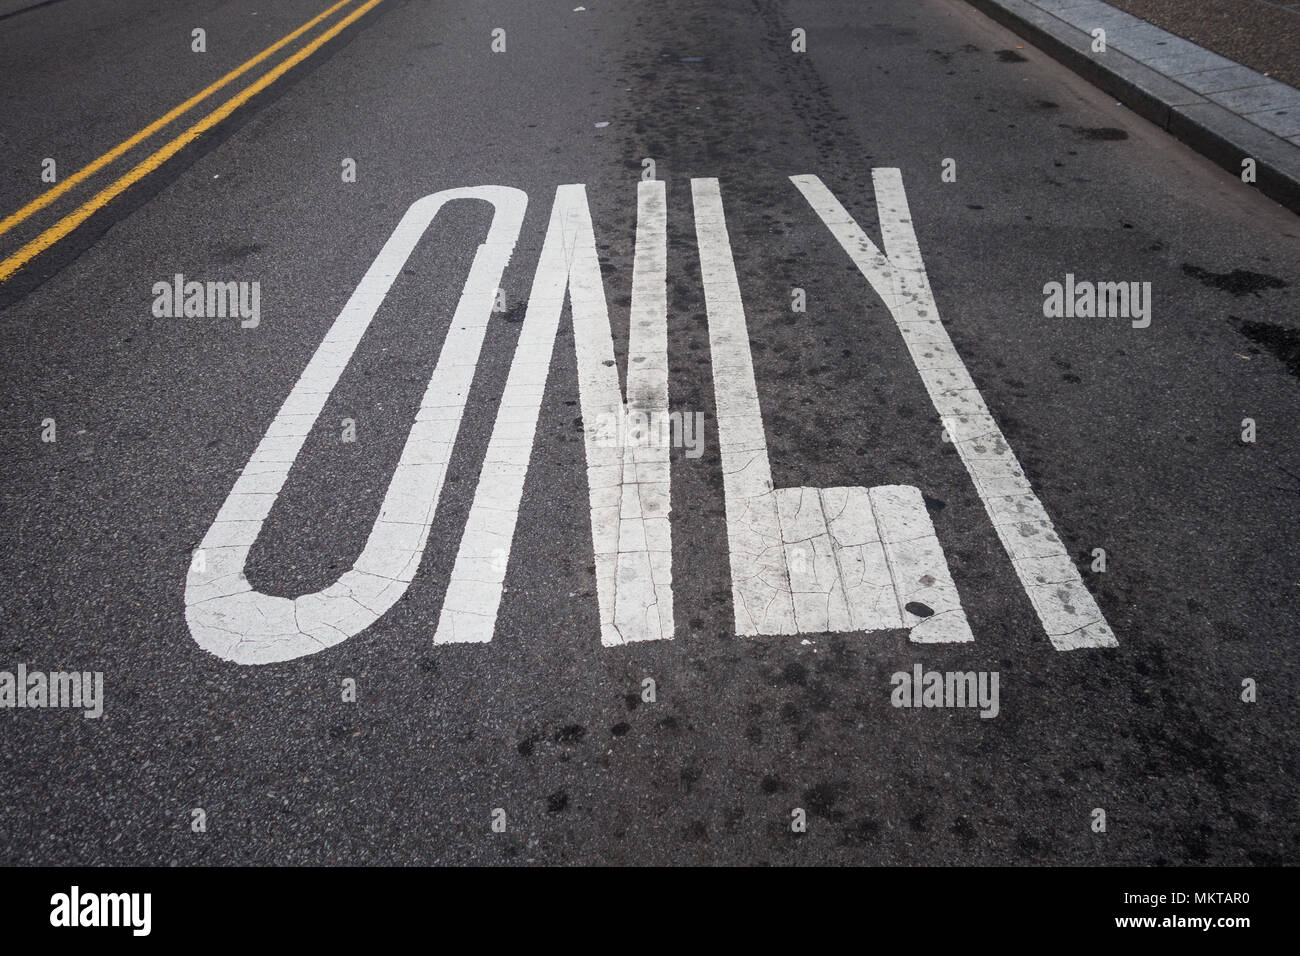 The word 'only' in capital letters painted on a road - Stock Image